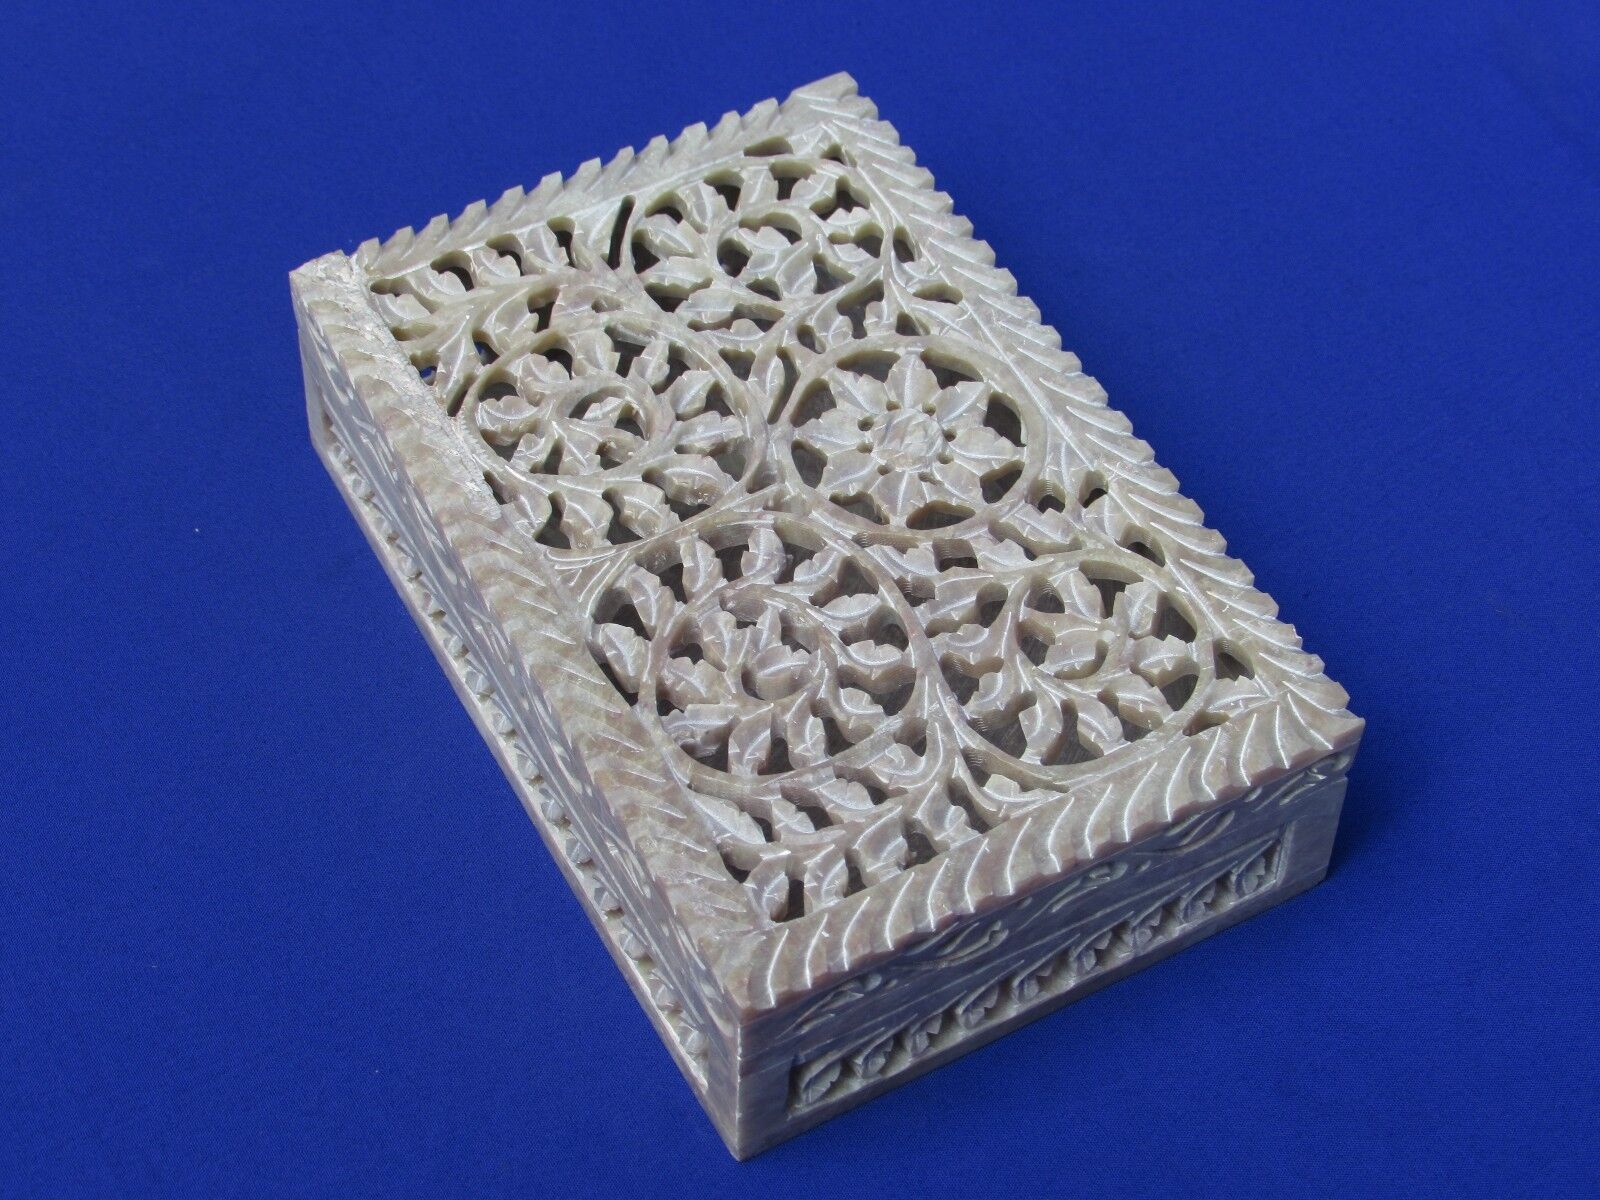 Marble Jewelry Box  Carving  Handmade  Floral Design Home Decor and Gift